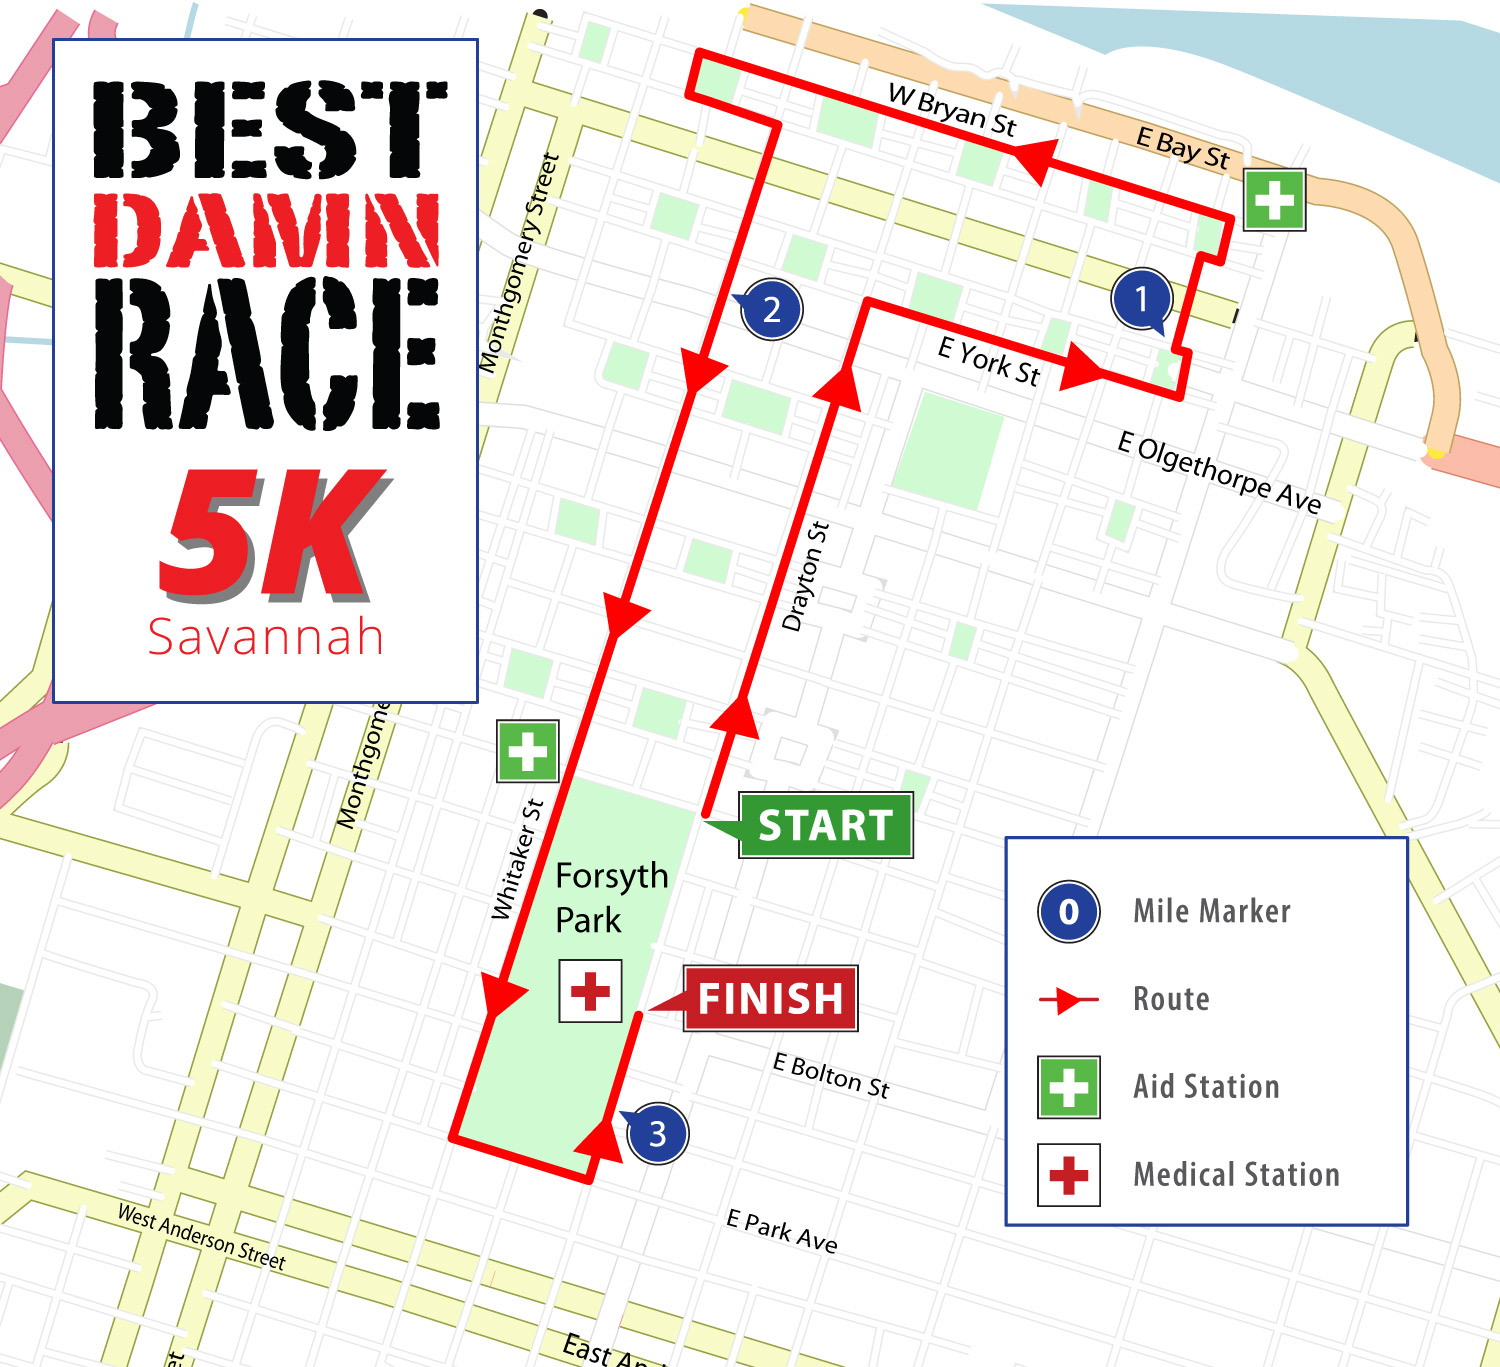 Savannah, GA 5K Map